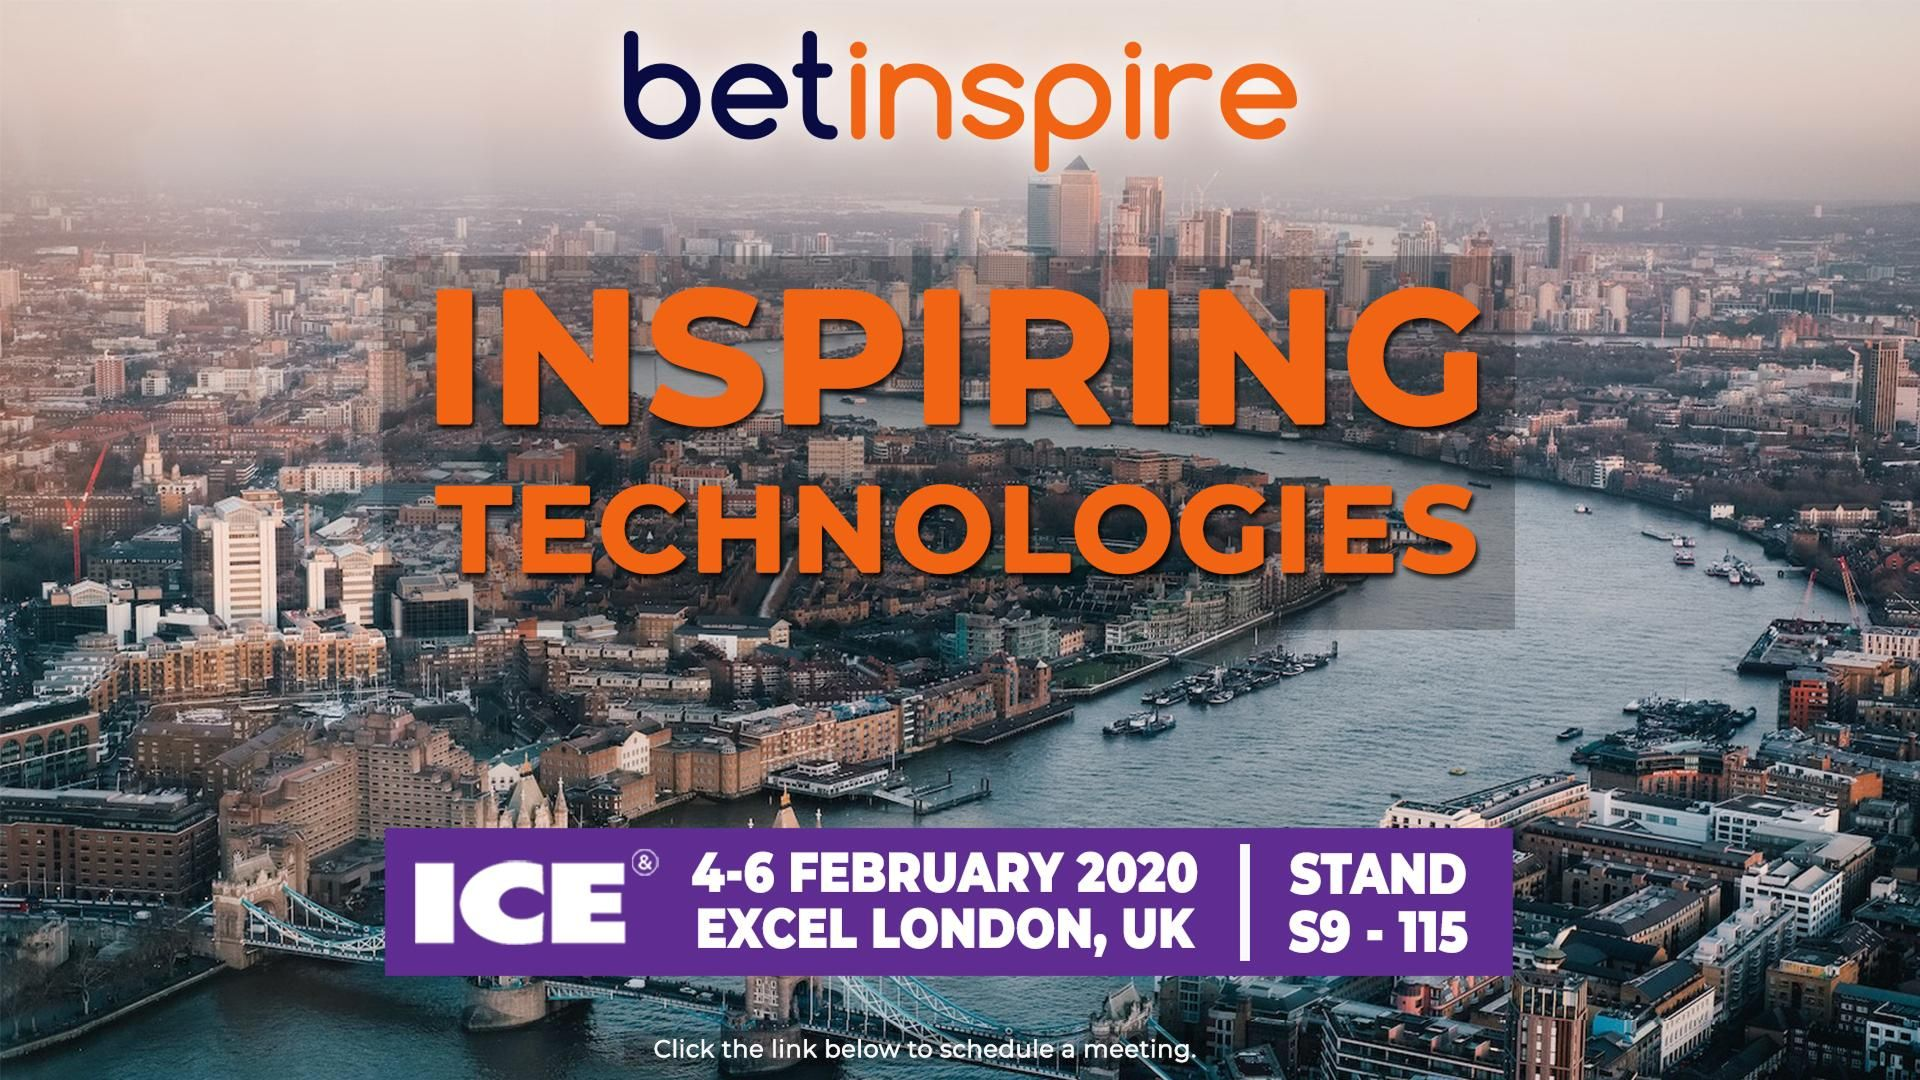 Meet Betinspire at ICE London 2020  - stand #S9-115